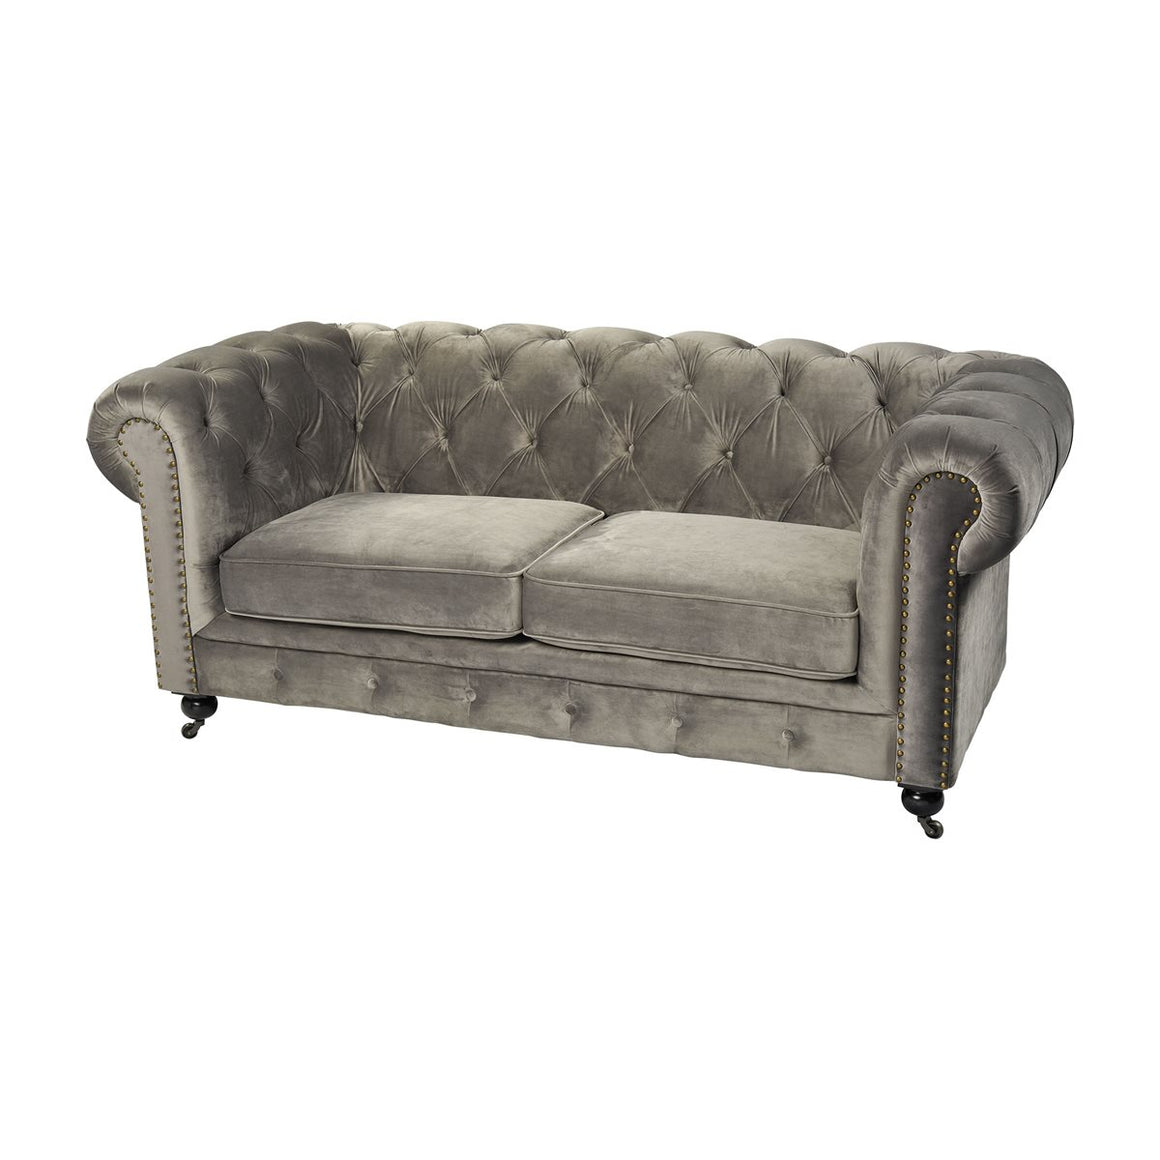 Gypsy Two Seater Sofa